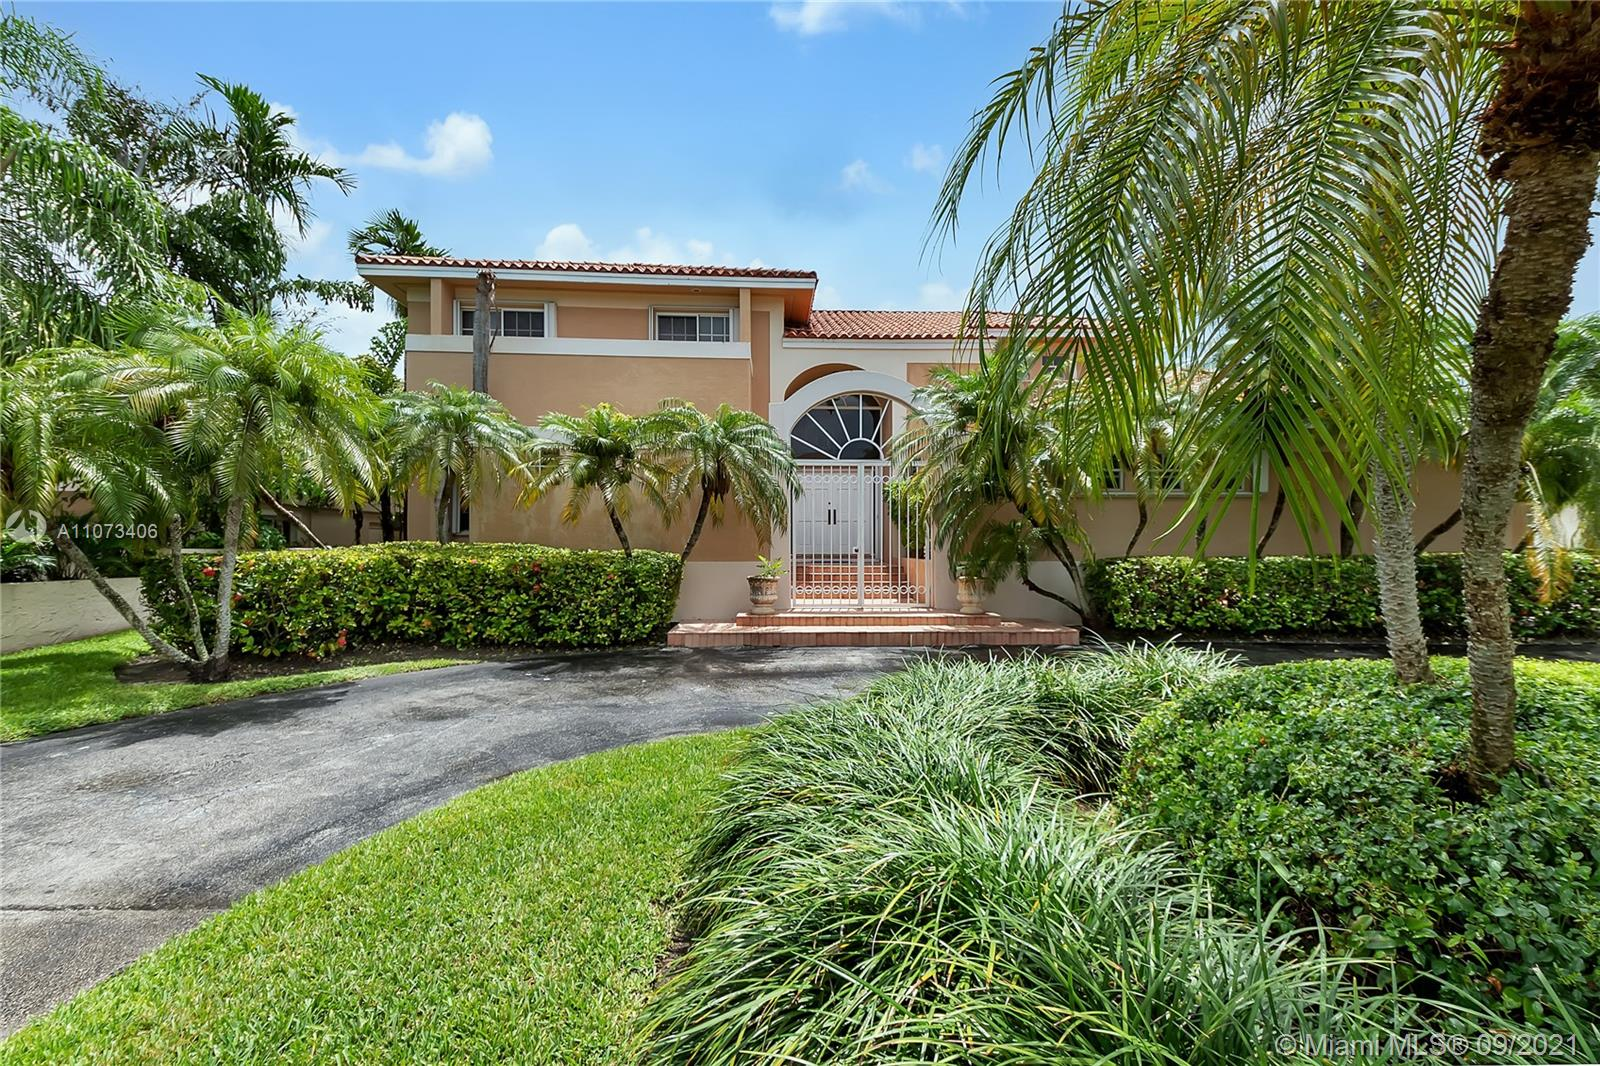 Have you ever wanted a home with a year-round vacation feel? Luxury home in GABLES BY THE SEA. Located in Guard-Gated Gables by the Sea on a 10,800 SF waterfront lot.  Amazing Canal with magnificent water views with sea-wall and deck . Amazing for families. Renowned Gulliver Schools are right around the corner and other top-rated private and public schools (Pinecrest Elementary) are nearby. Step outside onto your beautiful sun-kissed pool deck to enjoy your morning coffee and the sounds of coastal living. Covered out door terrace, large pool, 100 ft Dock. Wide deep water Canal. Bring your buyers to see this dream home NOW.  An opportunity to live the dream life, will not last long.